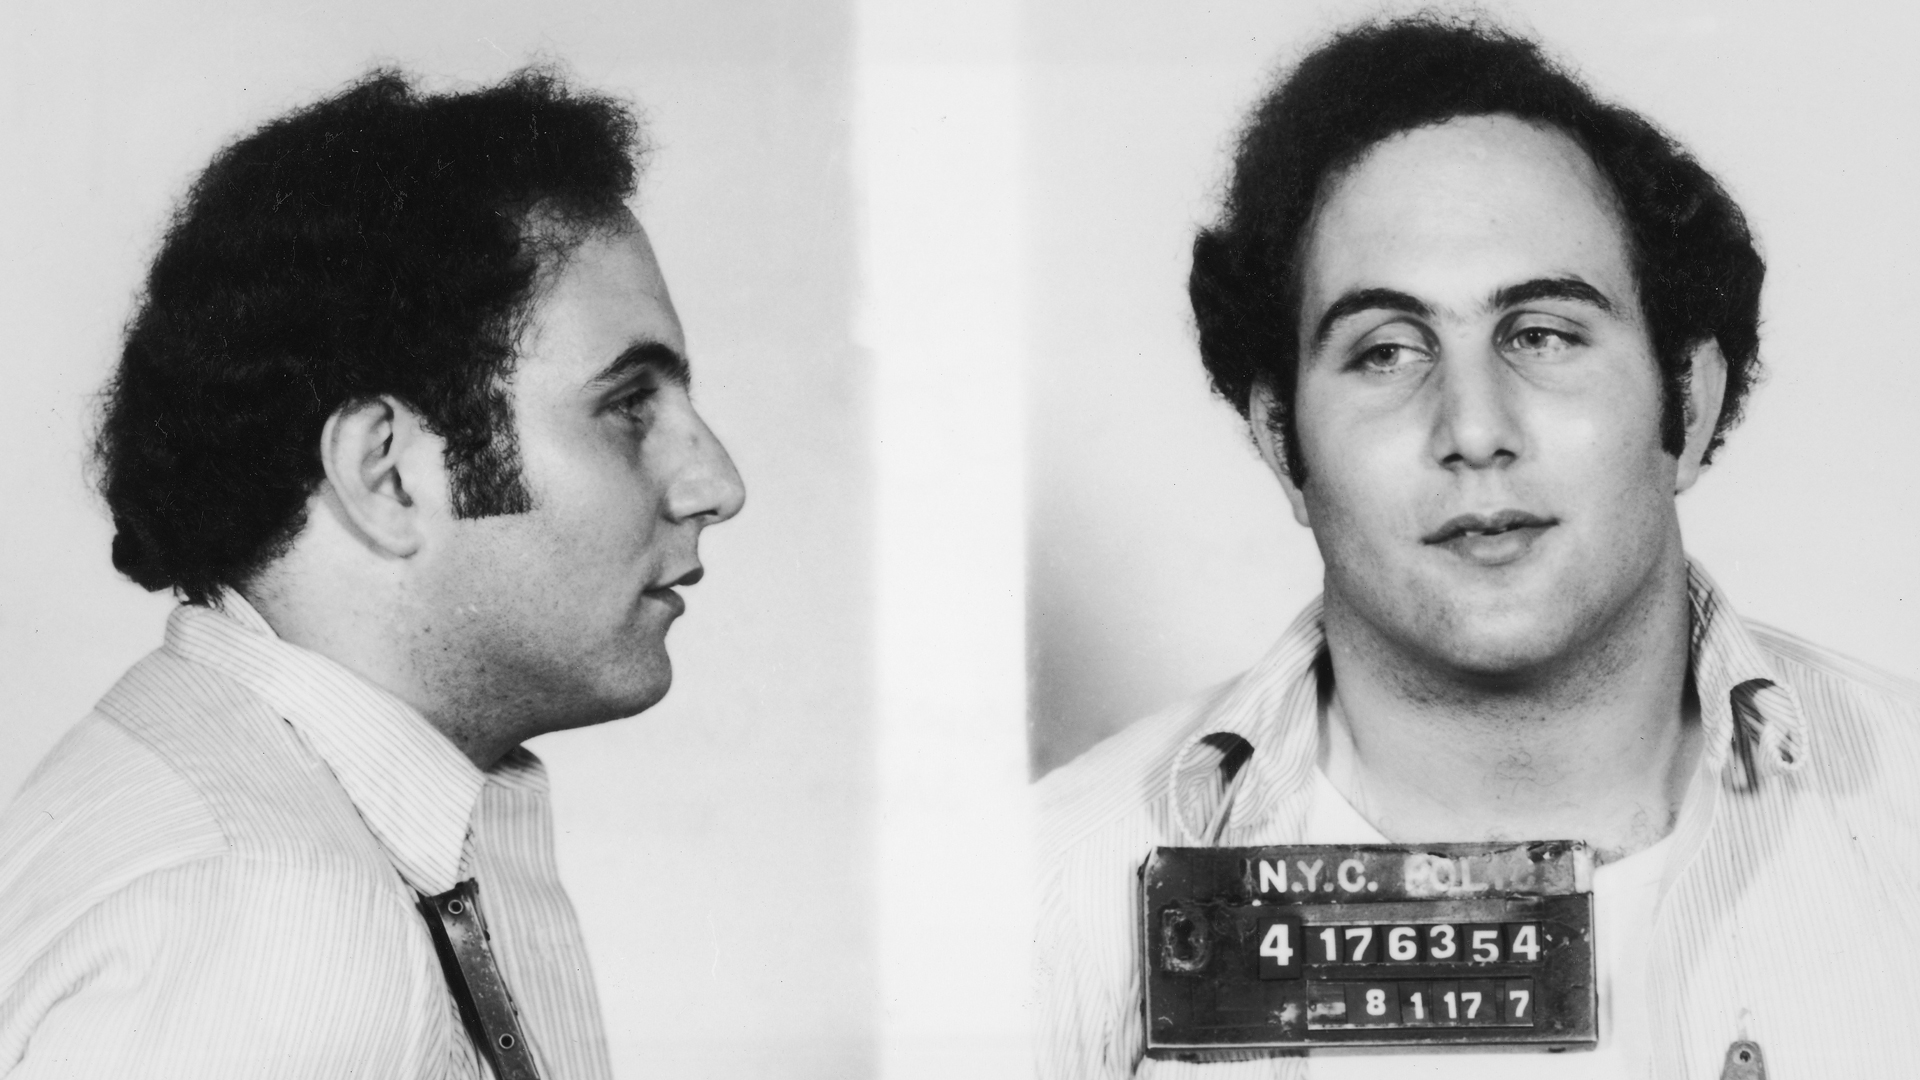 David Berkowitz Confessed to Being the 'Son of Sam.' But Did He Really Act Alone?